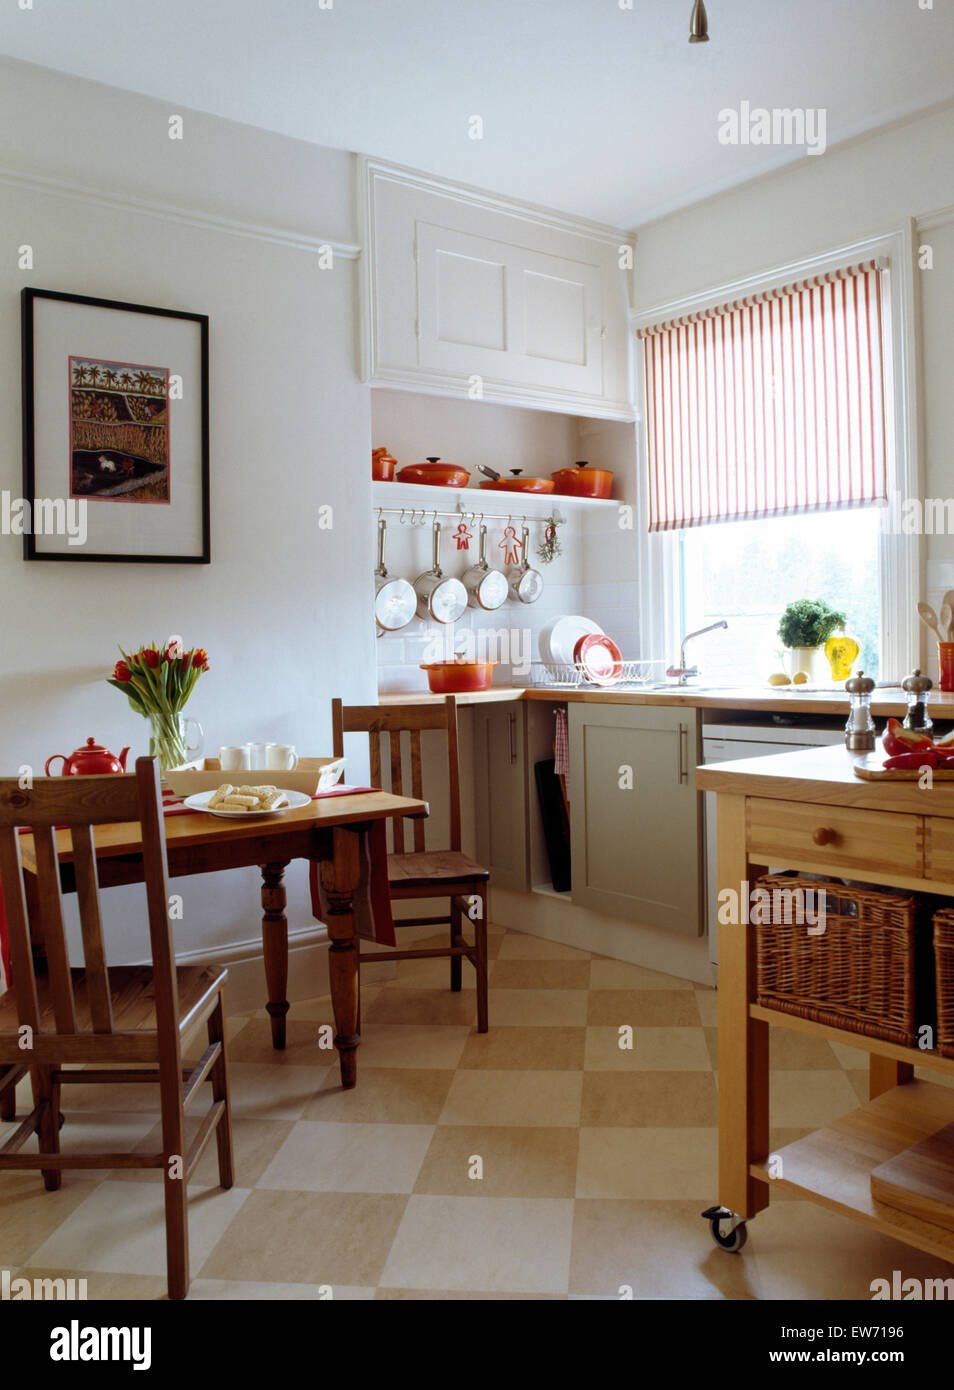 Cream checkerboard tiled flooring and striped blind in white country kitchen with wooden dining table and chairs - Stock Image